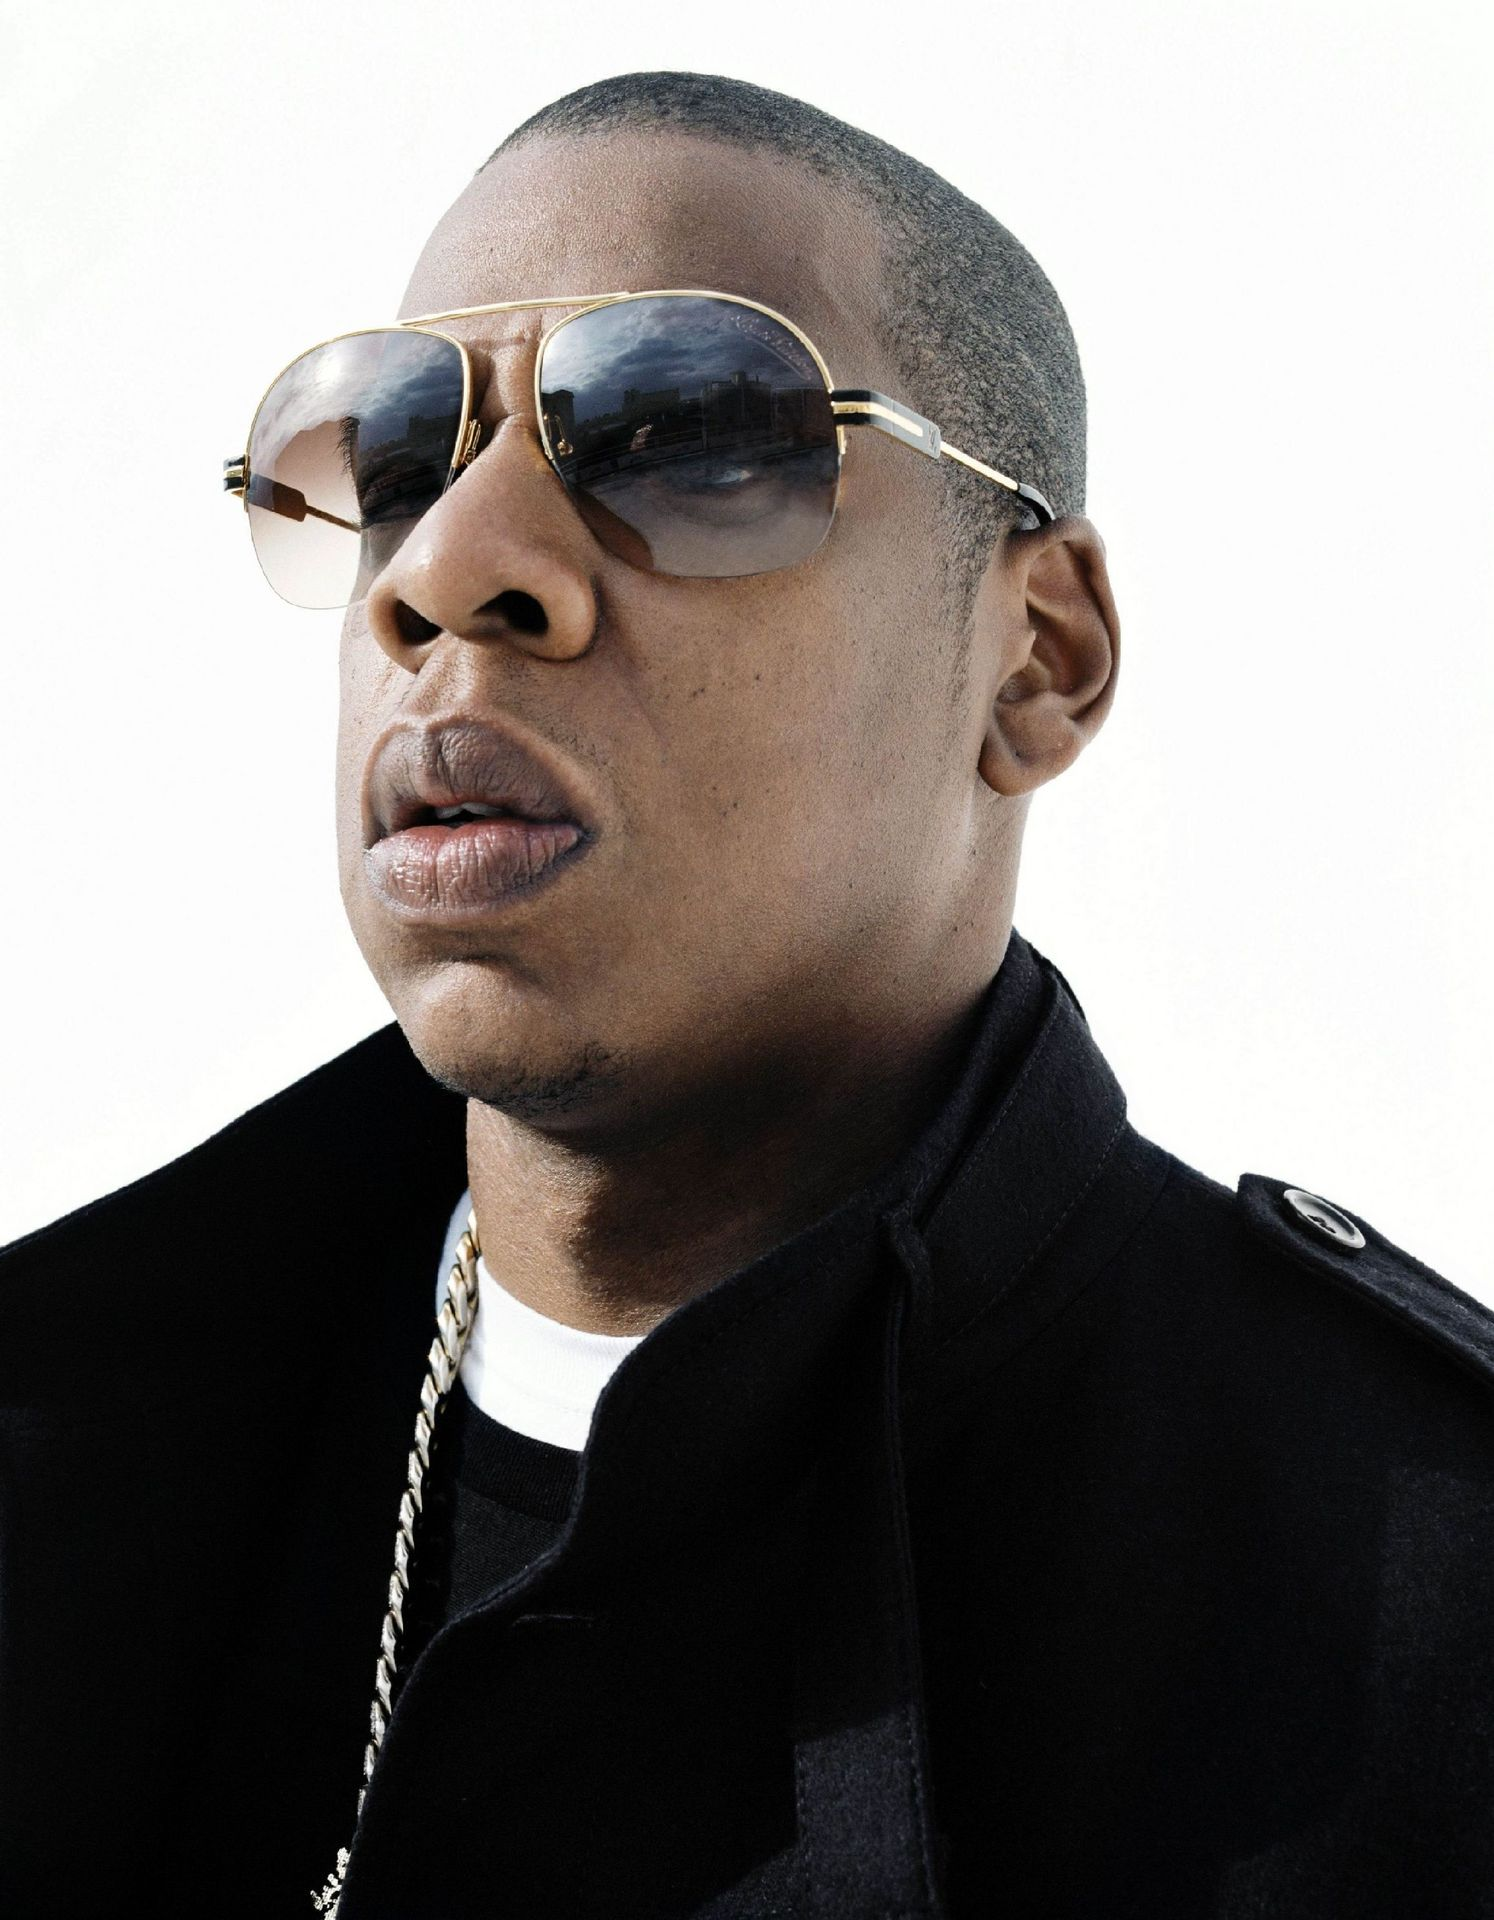 Jay Z images Jay-Z HD wallpaper and background photos (919589)